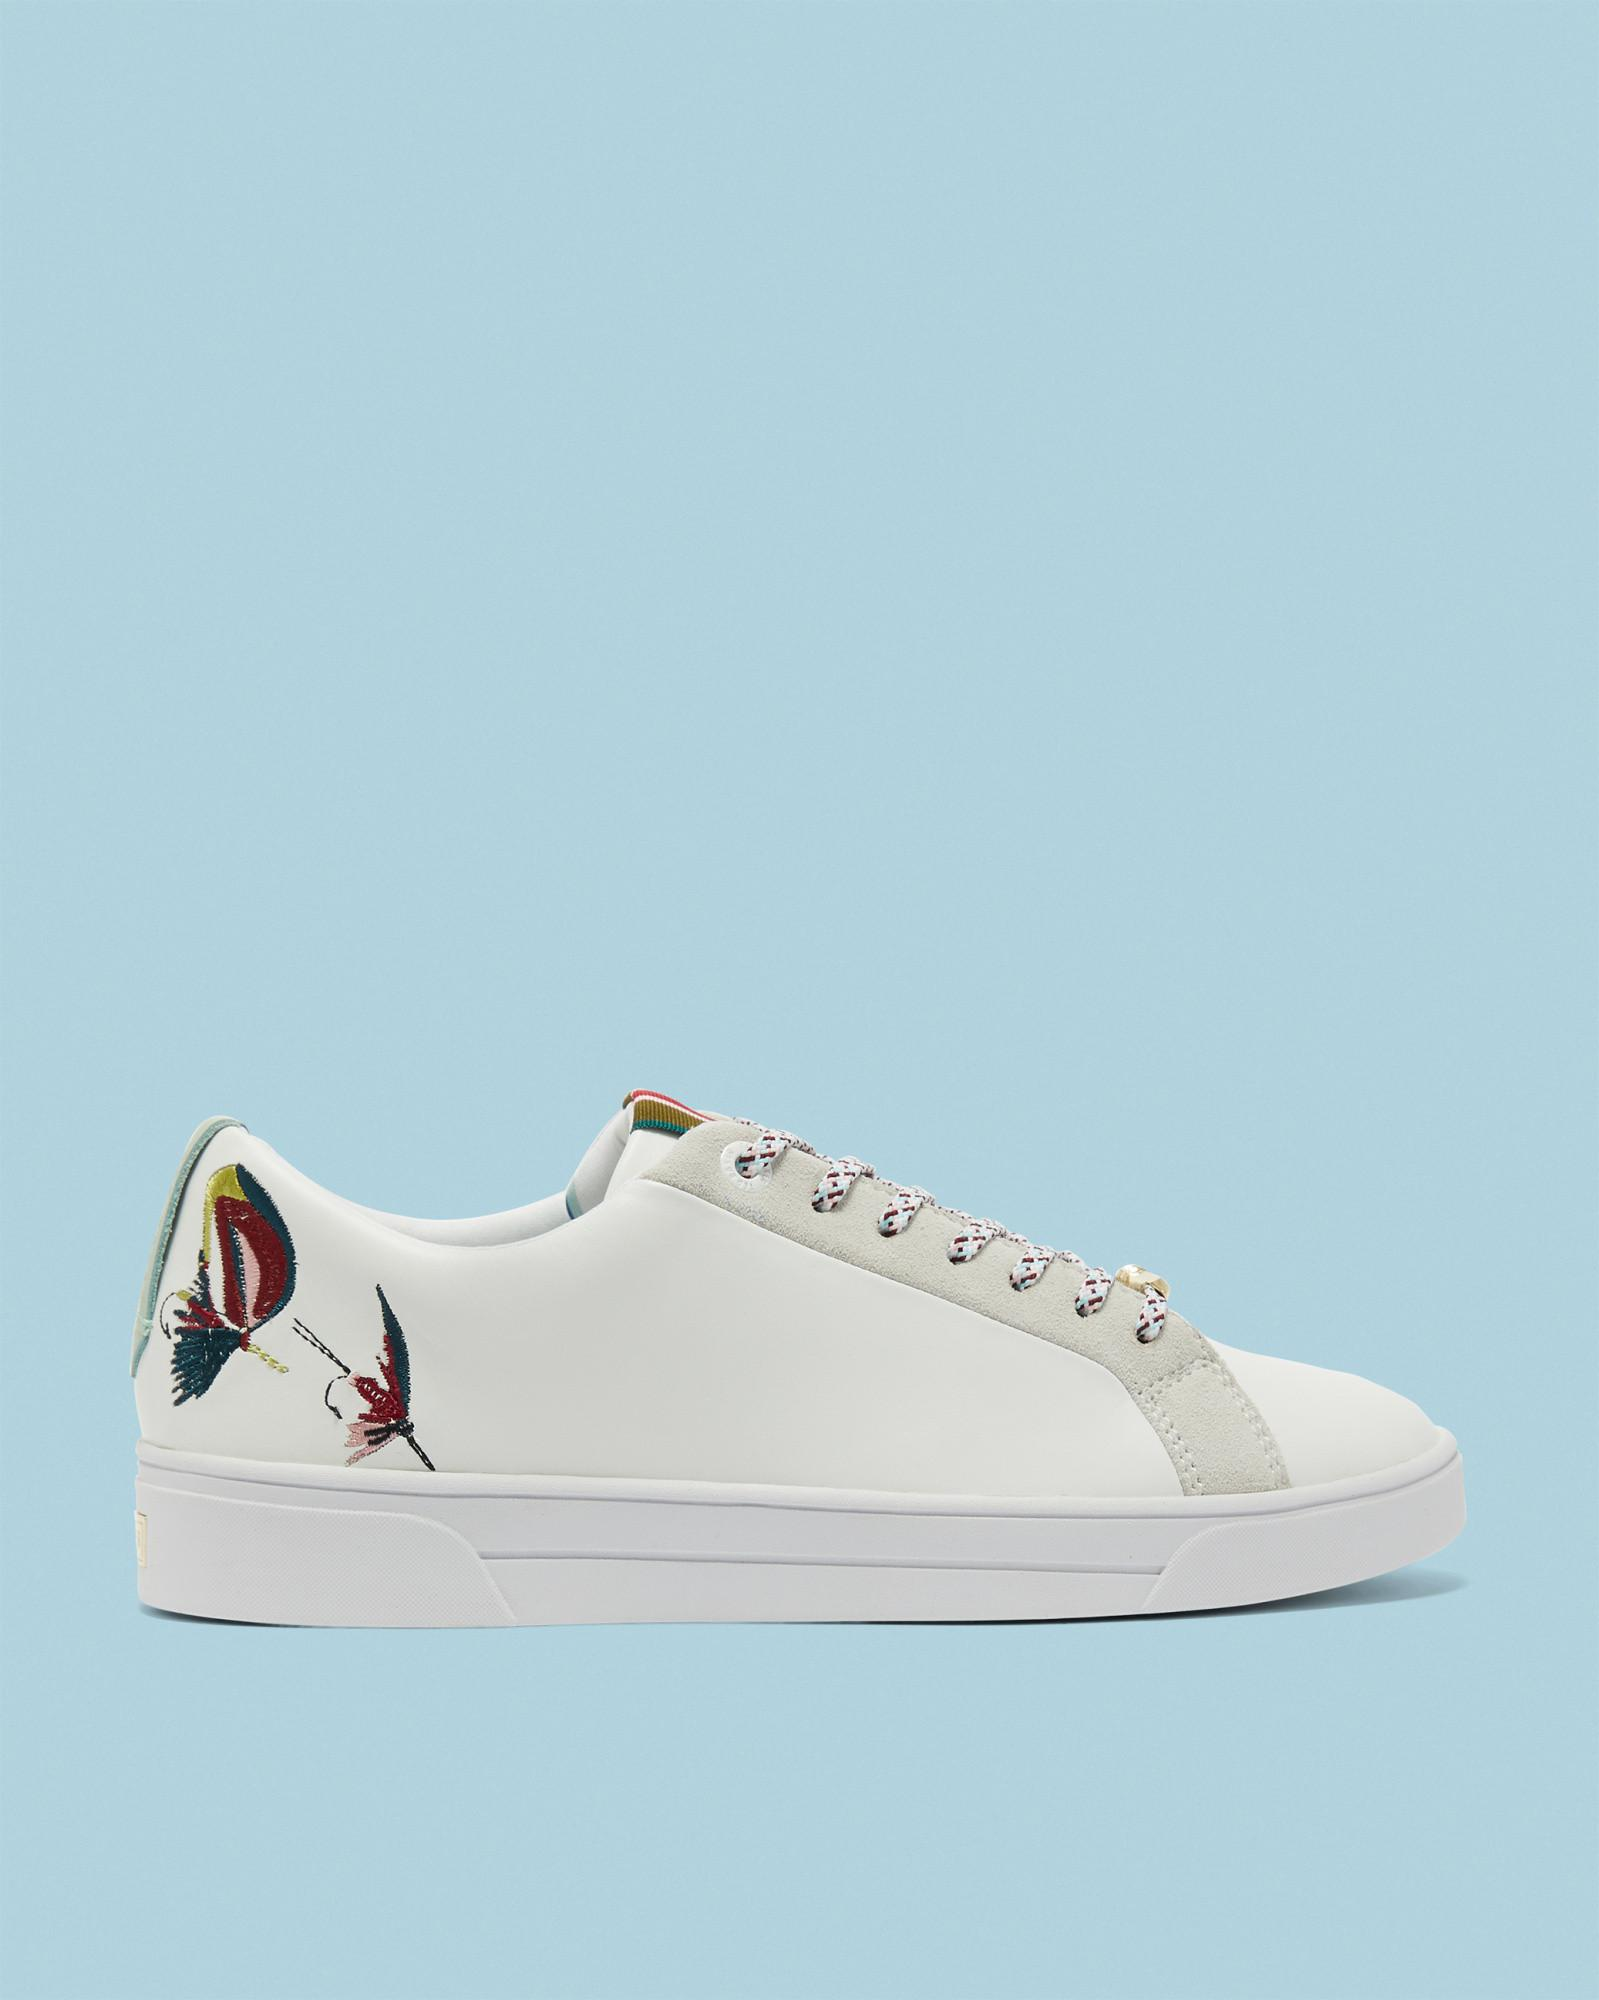 Shop For Swimmers Embroidered Trainers Ted Baker Clearance Limited Edition cCQhKAB